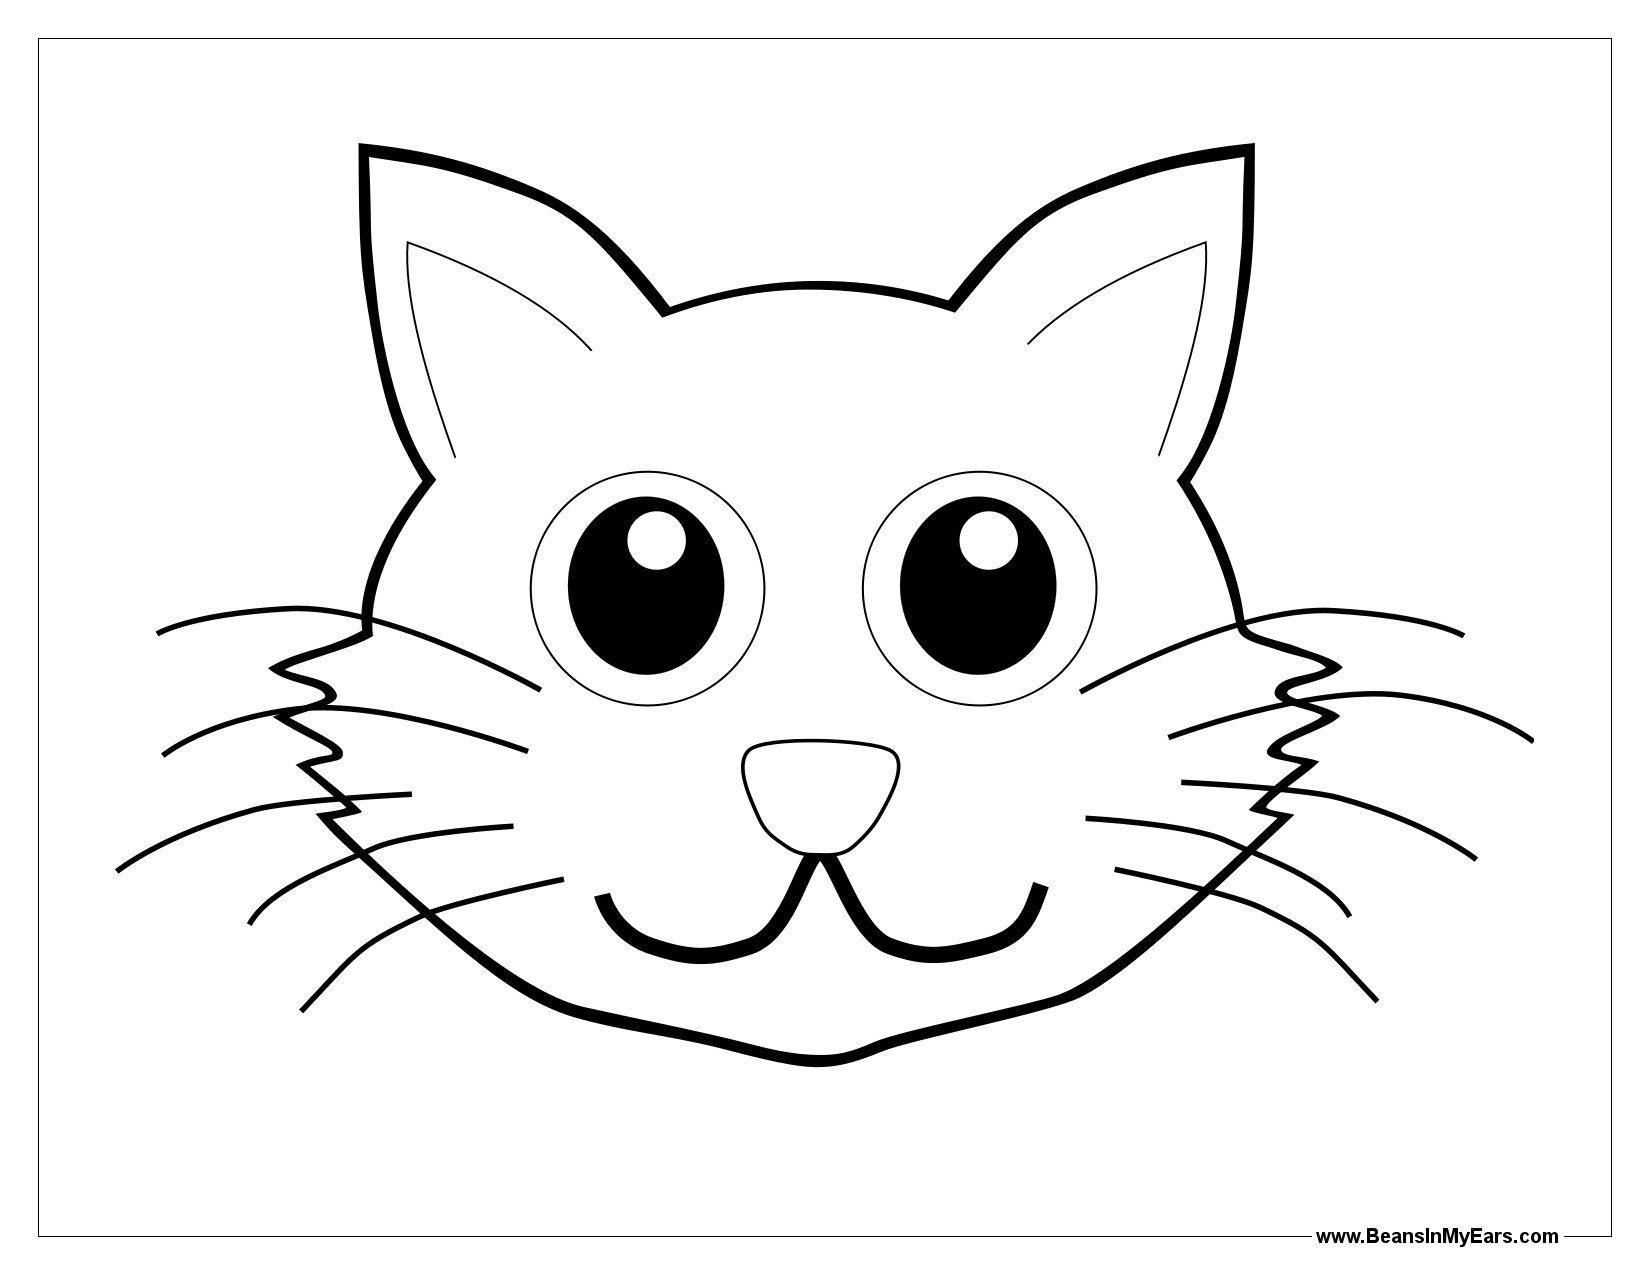 cat to color clip art library coloring rcayek55i cardboard games on steam size of coloring pages Cat Face Coloring Page